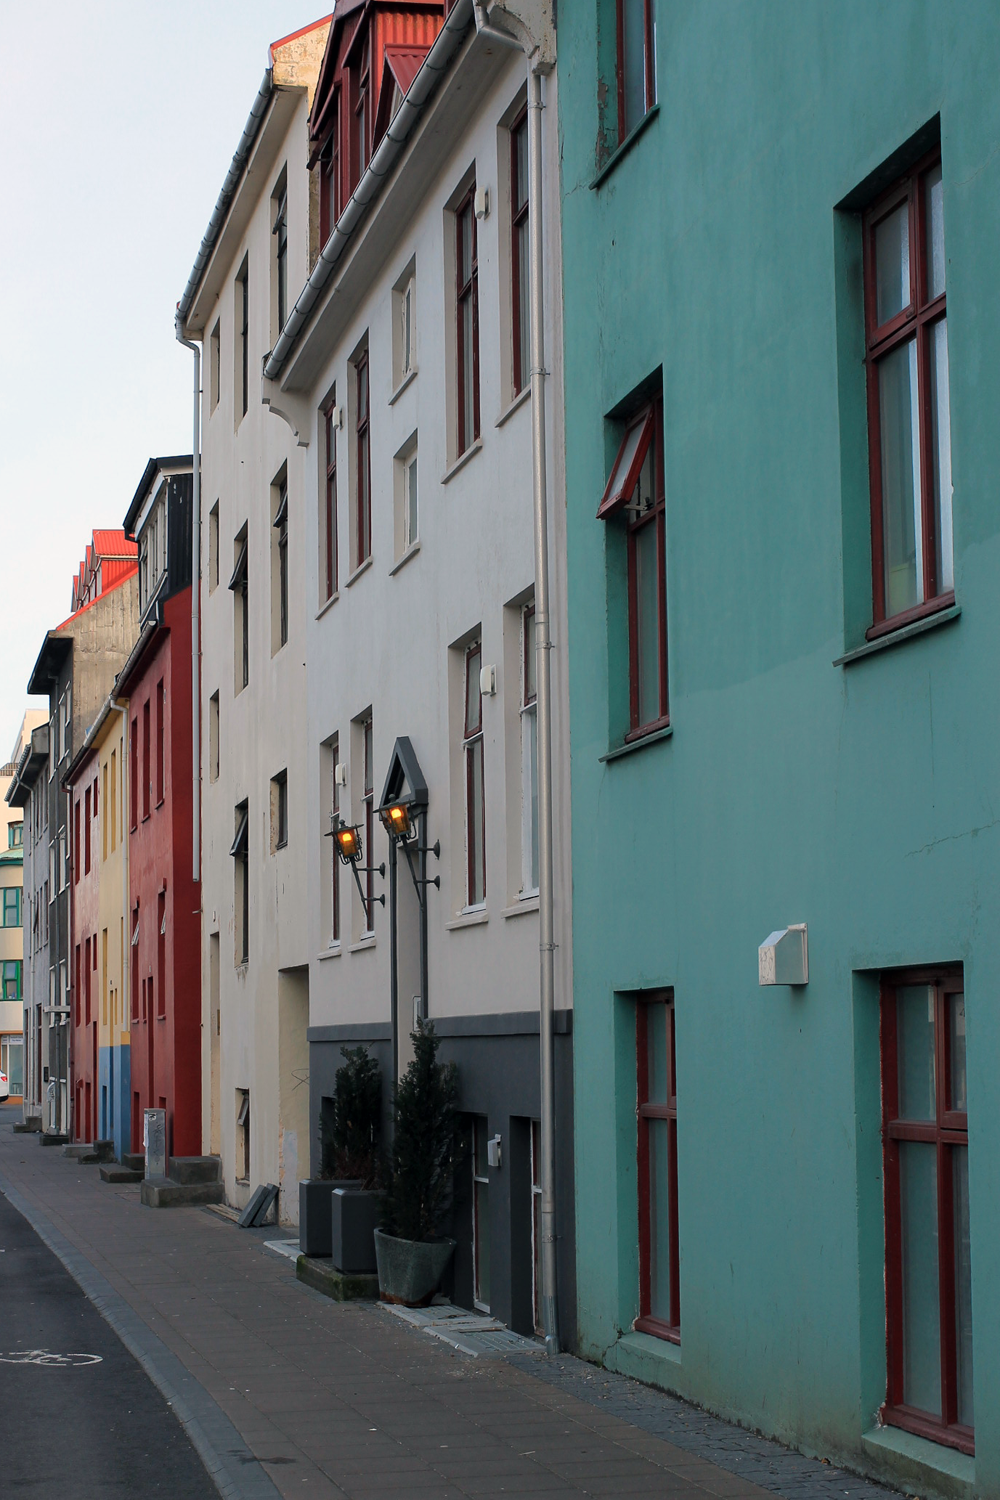 colors of reykjavik, live colorfully, colorful reyjkavik, colorful buildings